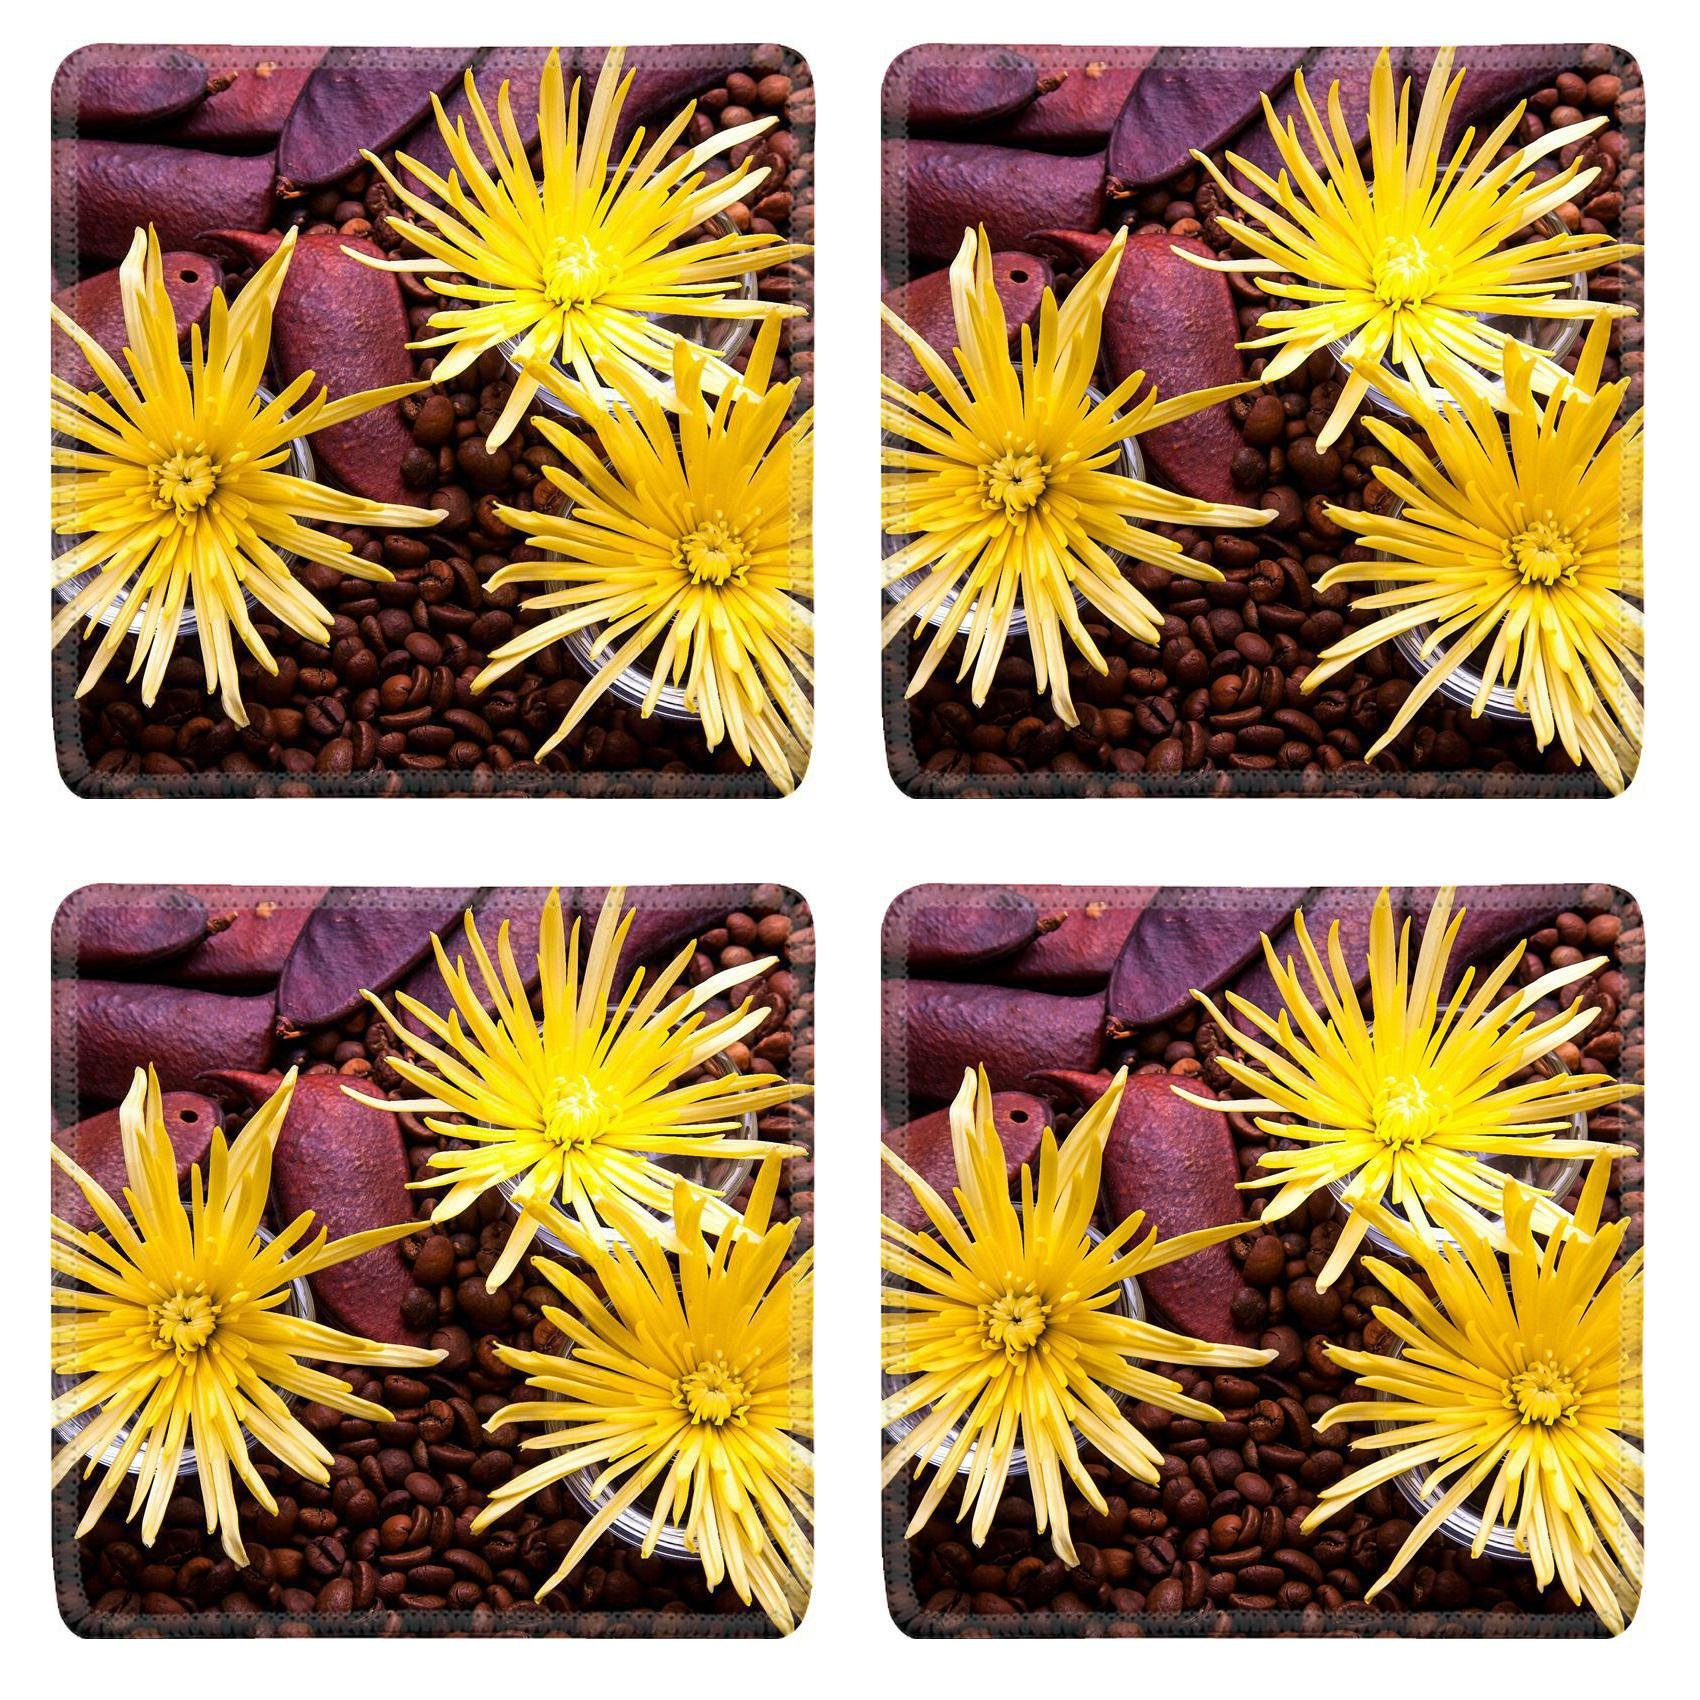 MSD Square Coasters Non-Slip Natural Rubber Desk Coasters design 21393043 Spider Chrysanthemum Flower Arrangement for beauty treatment in spa